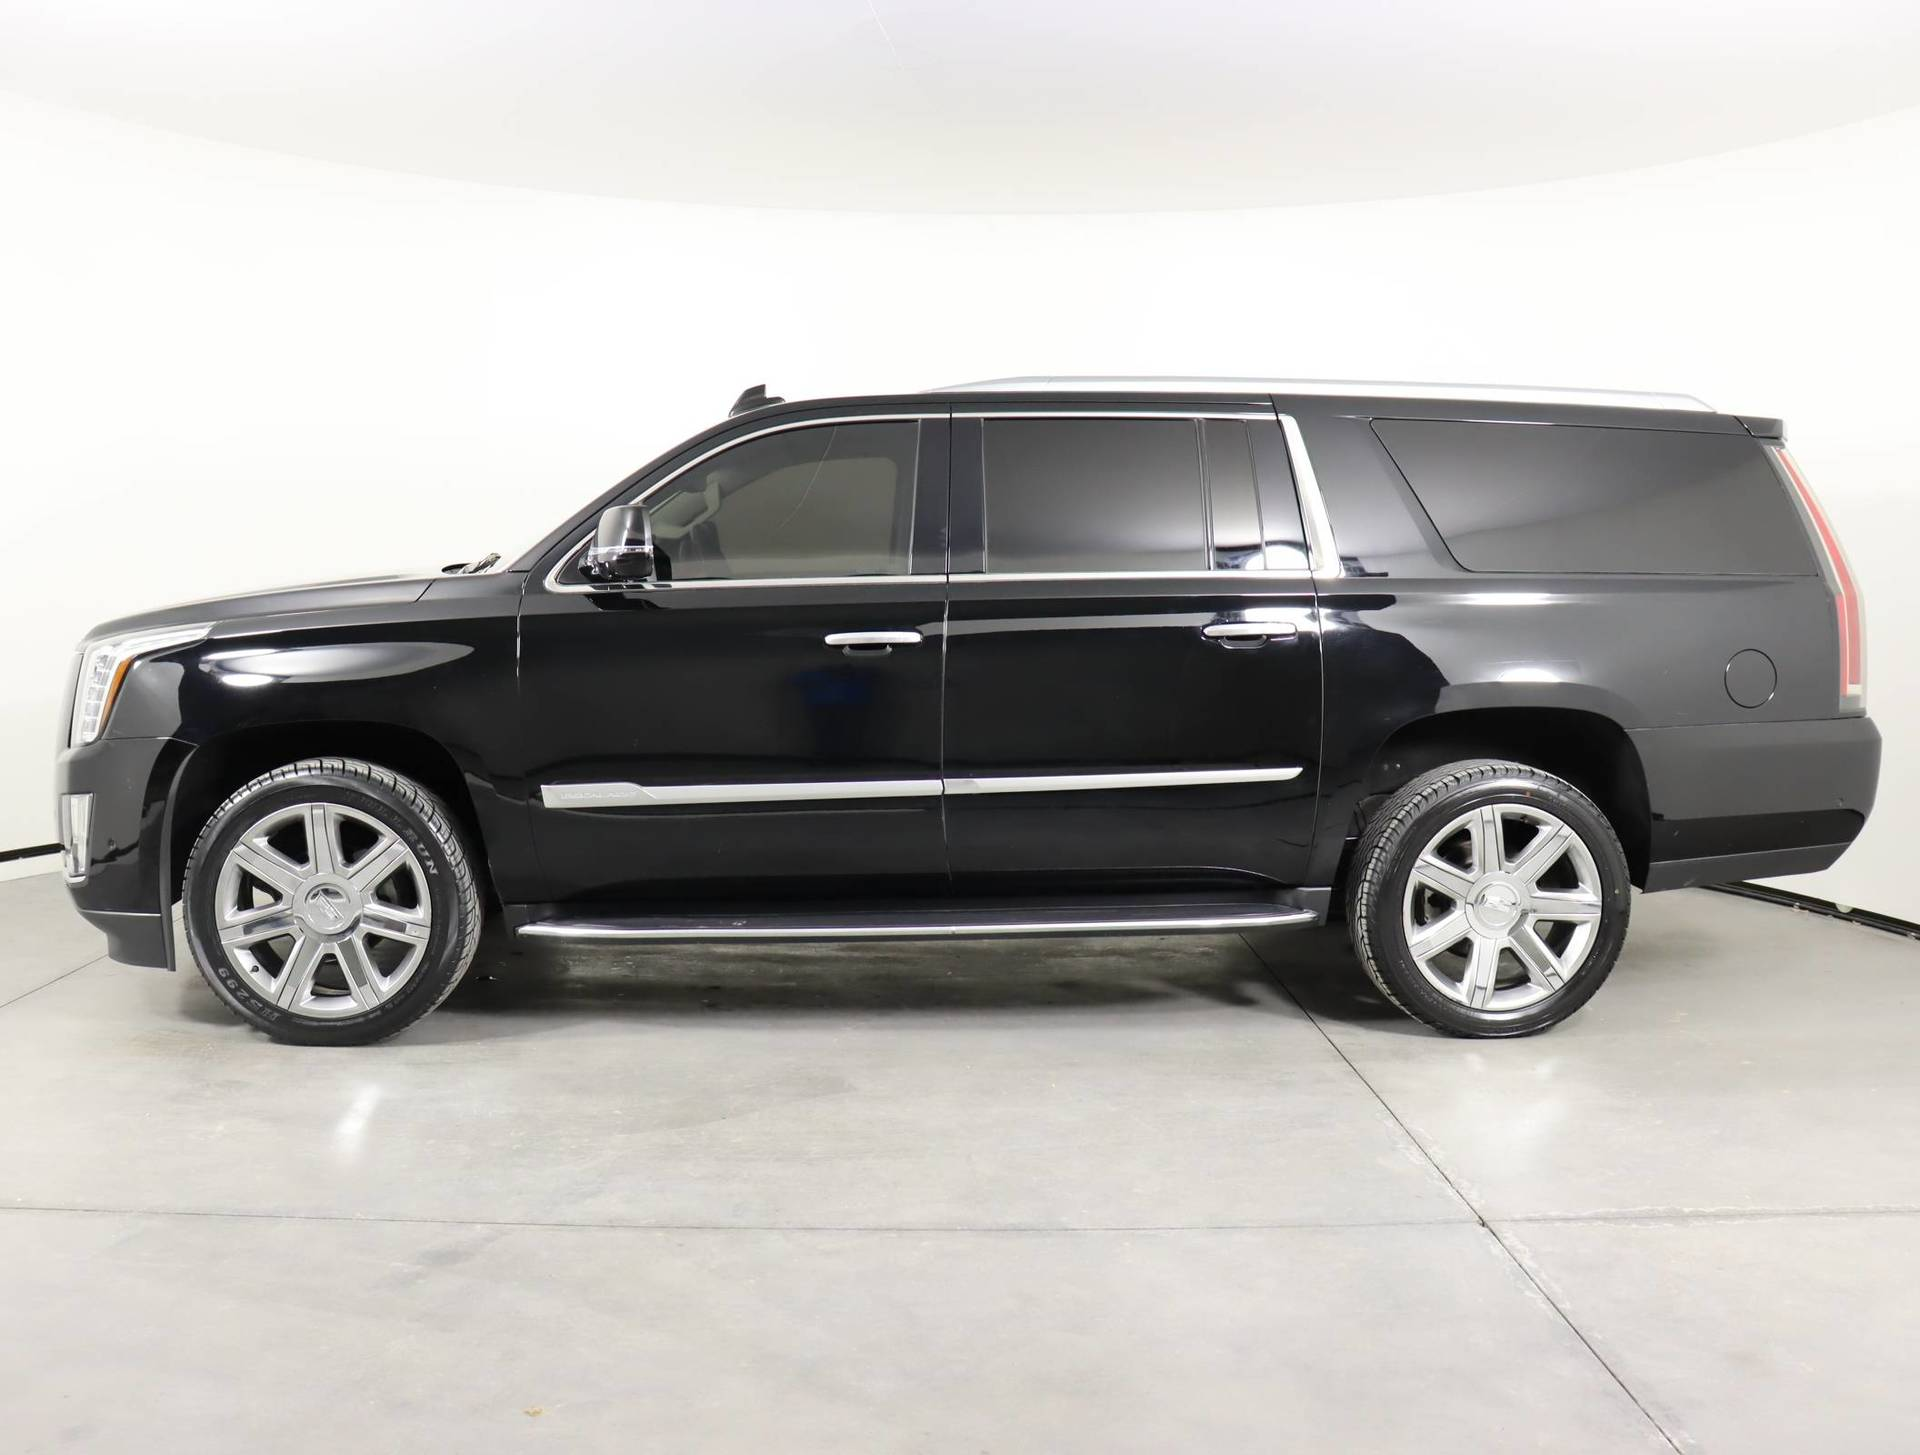 used vehicle - SUV CADILLAC ESCALADE ESV 2019